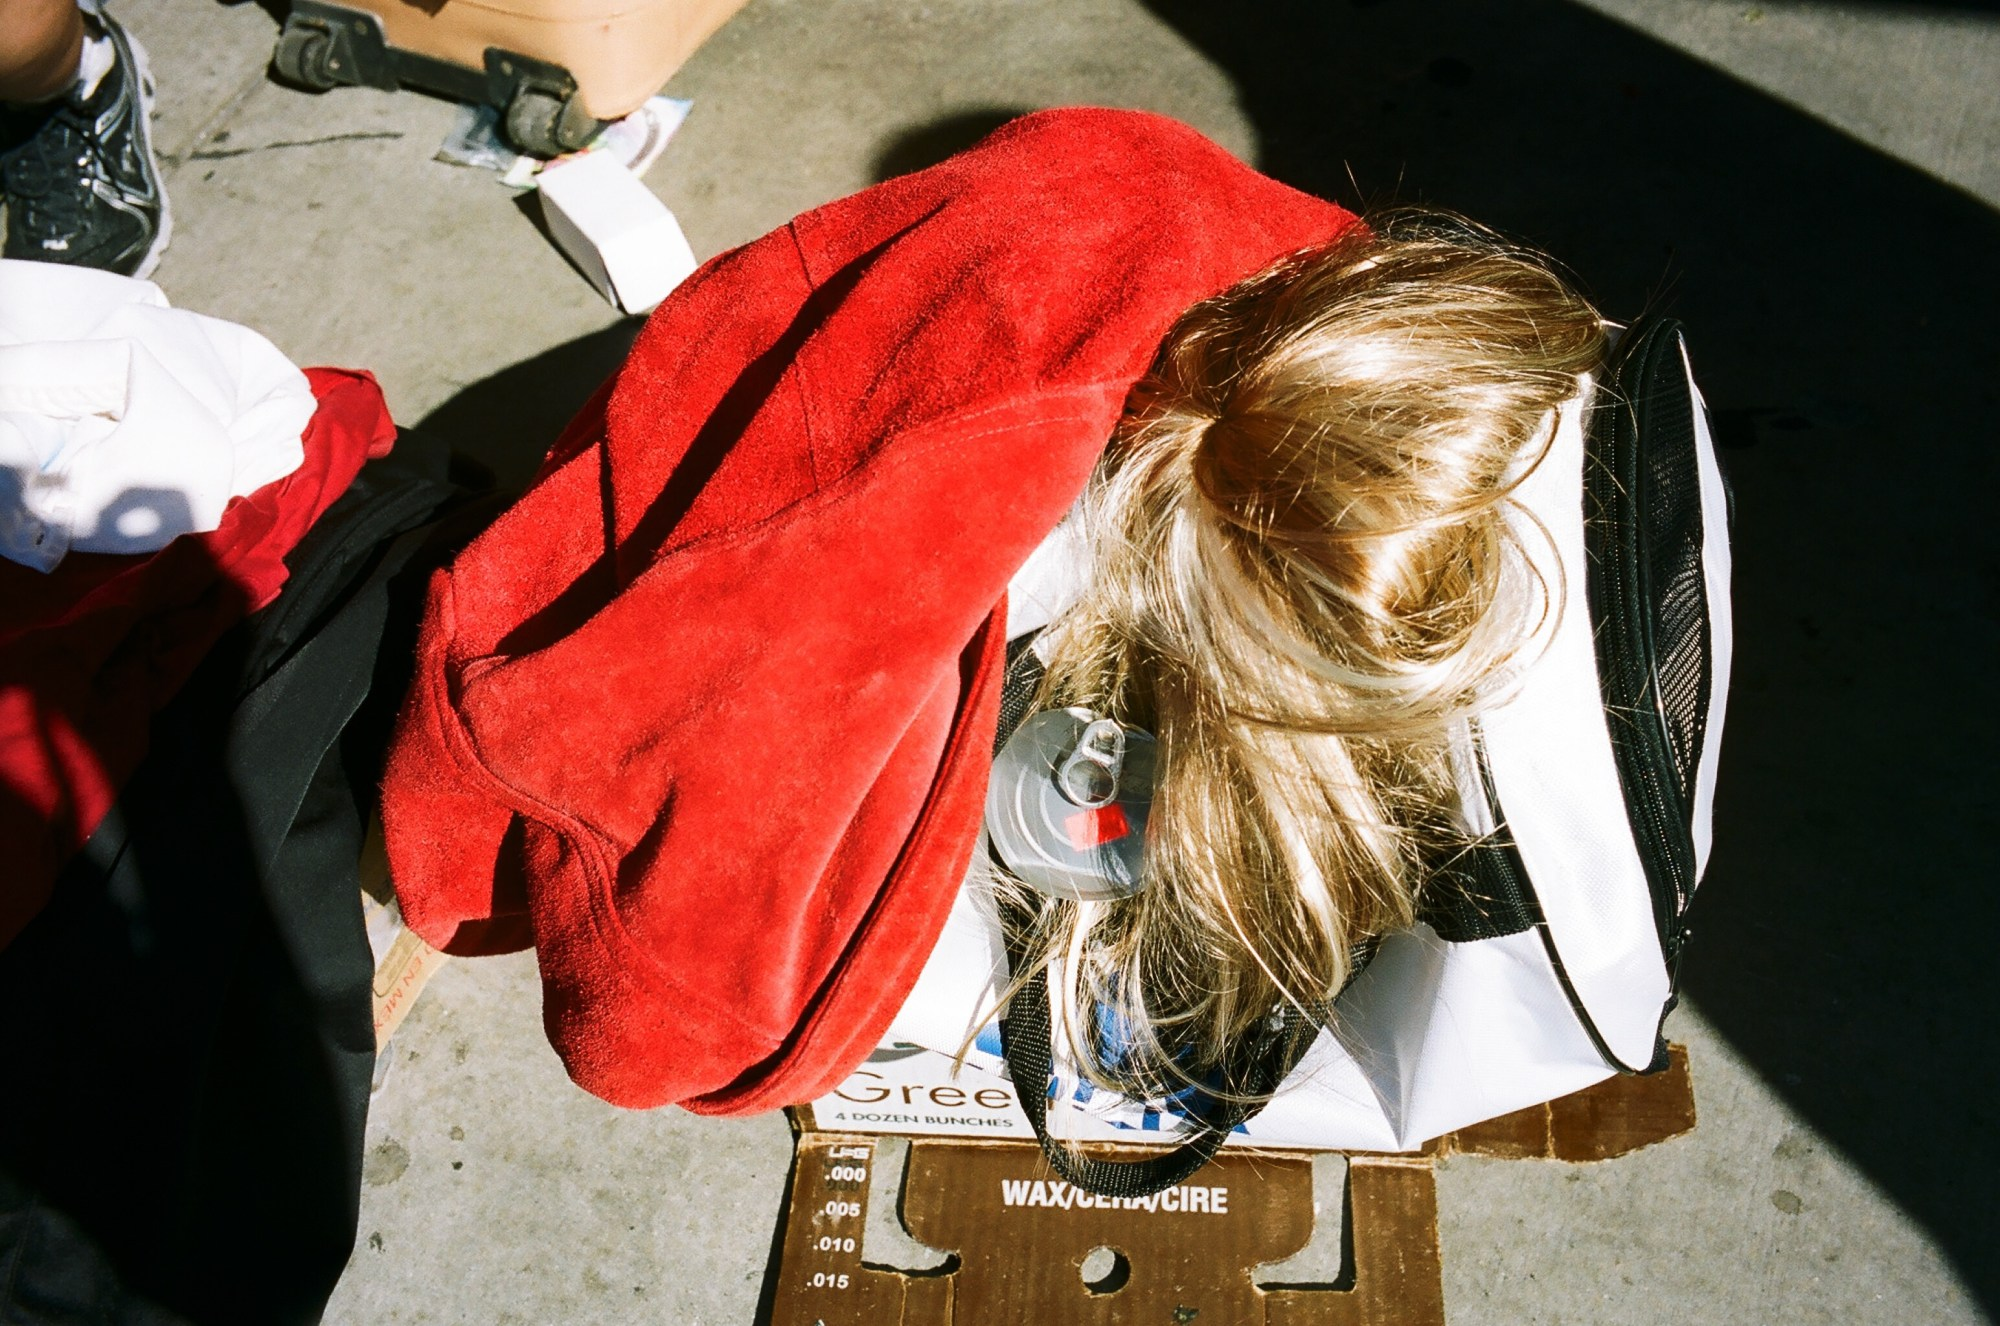 Surreal street photo by ERIC KIM: What is going on? Is there a head inside the bag? Wig and red bag